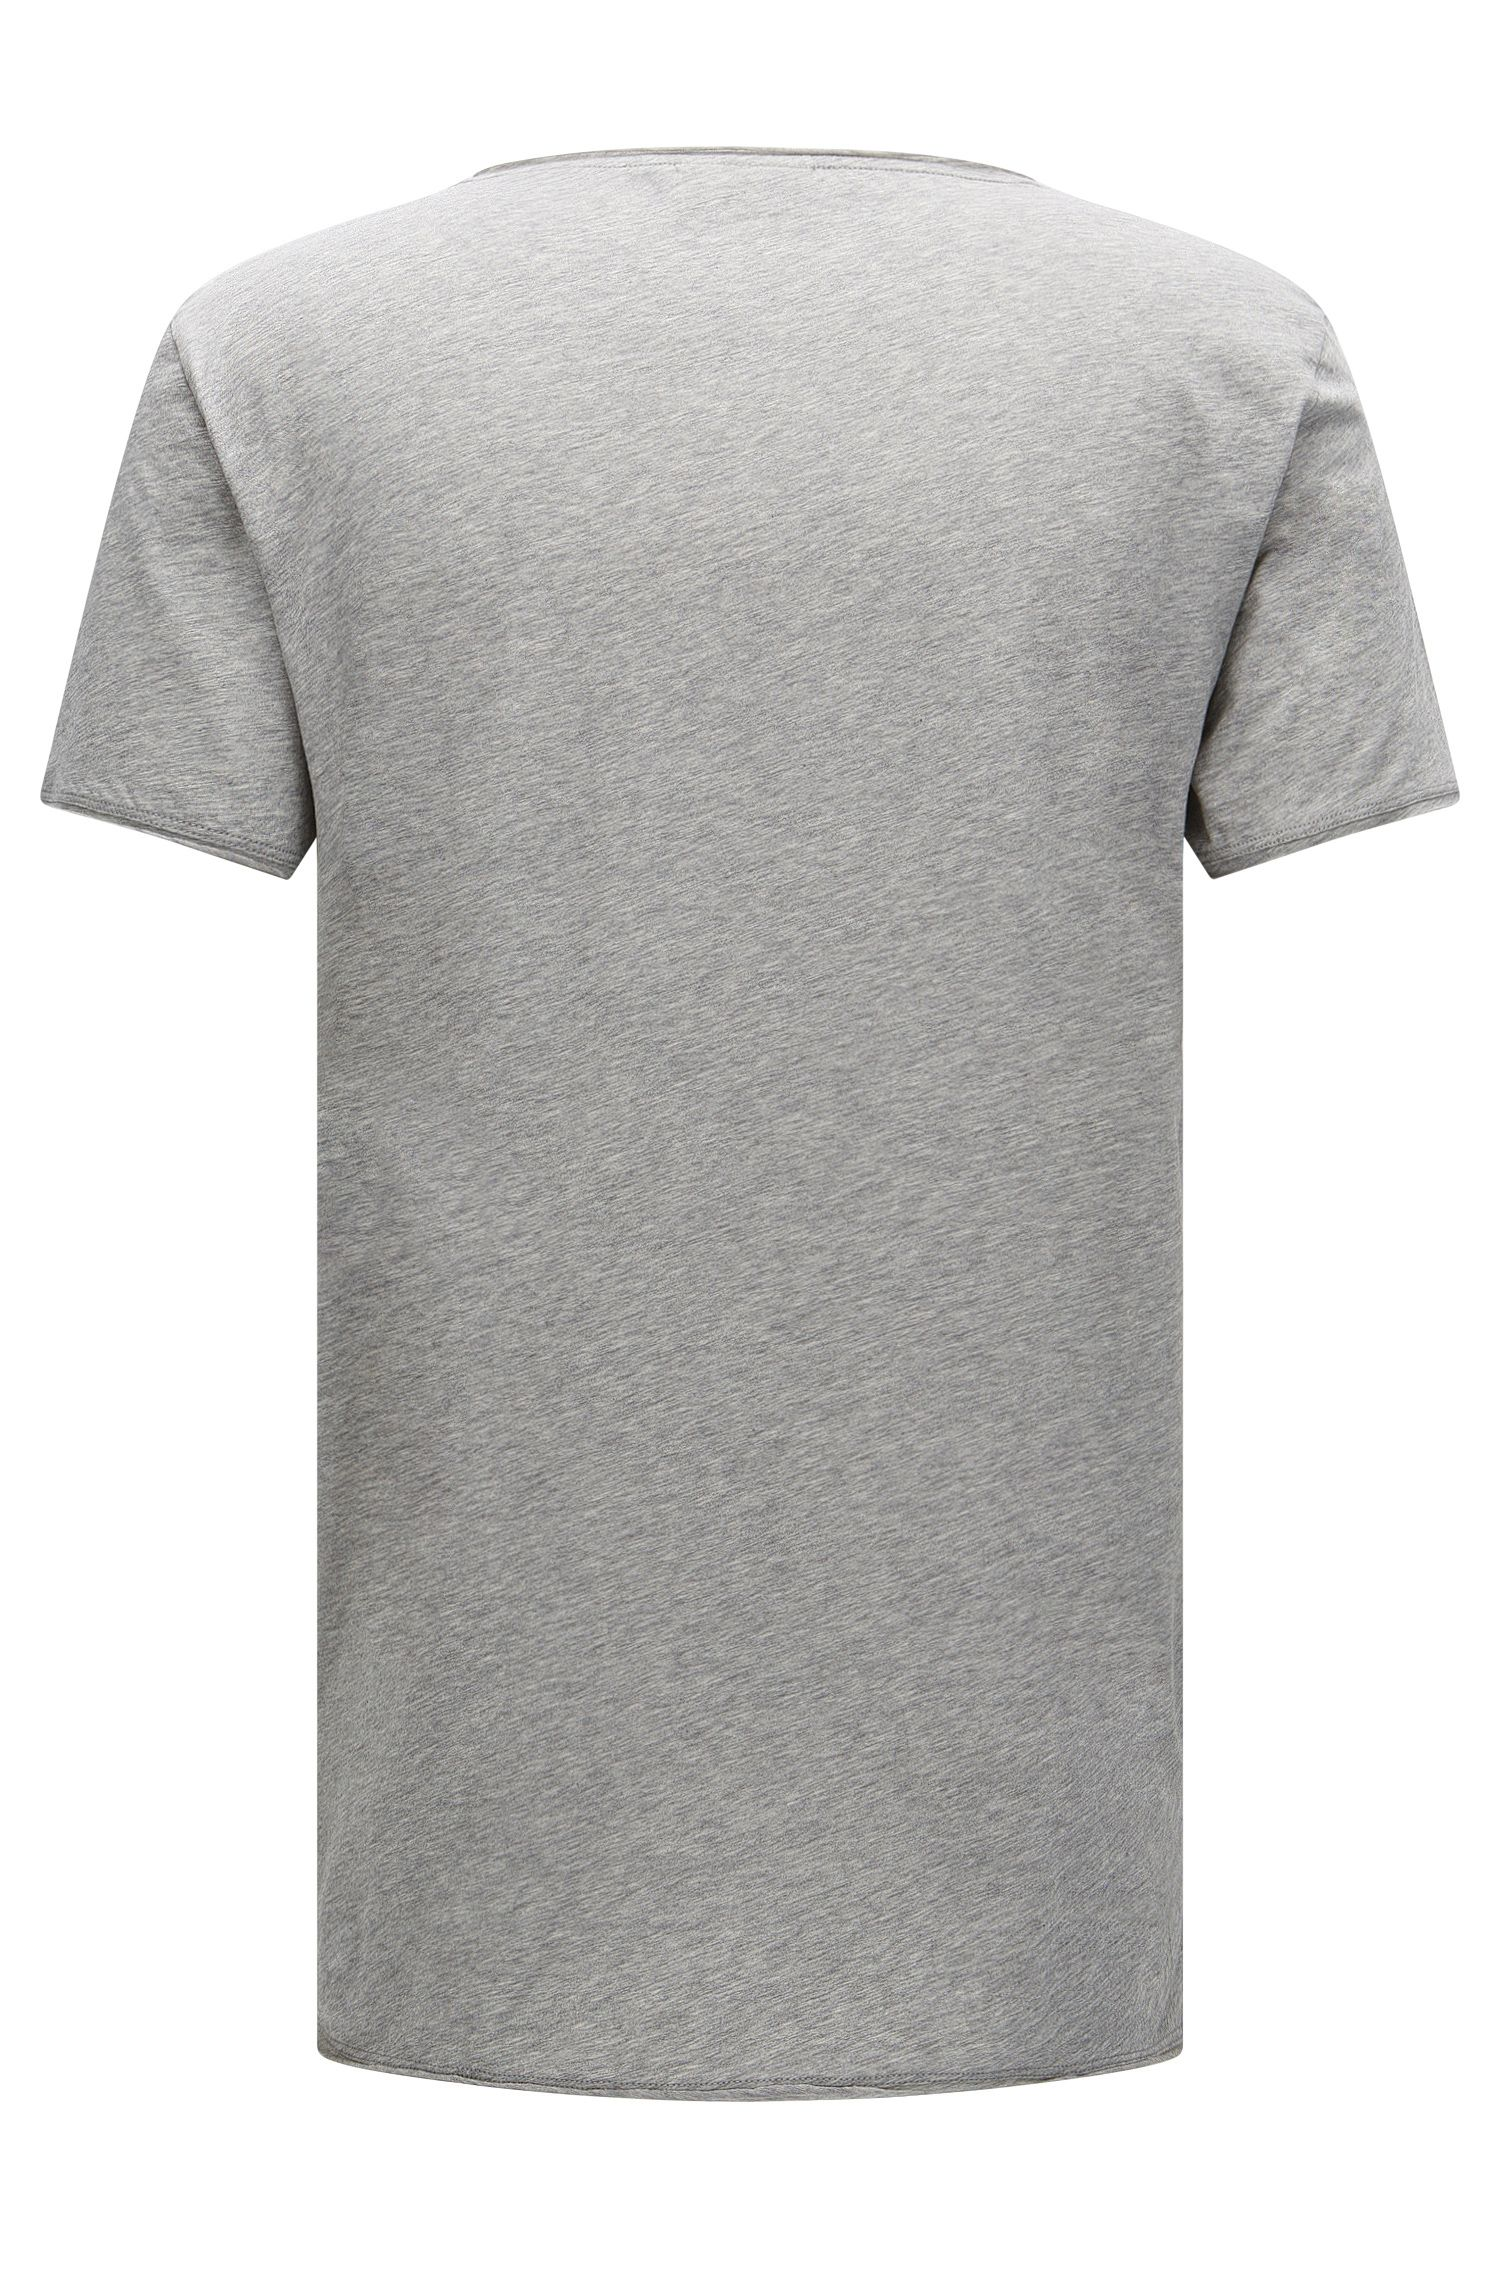 Relaxed-fit T-shirt in supima cotton